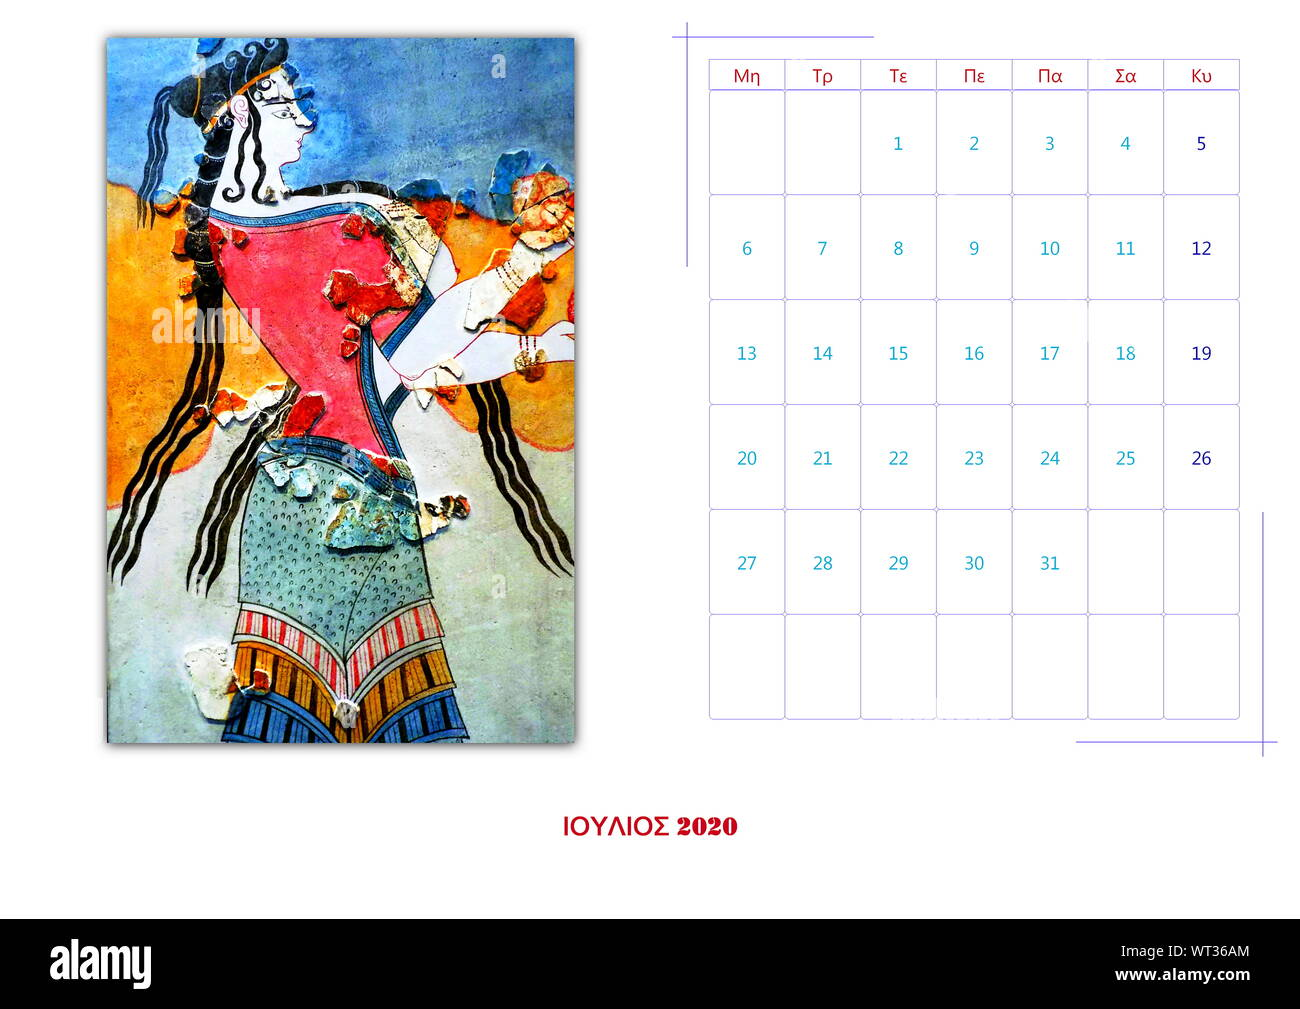 calendar, 2020, per month, 12 photos, fresco, ancient, Greek, Minoic, Mycenaean, collection 2 Stock Photo